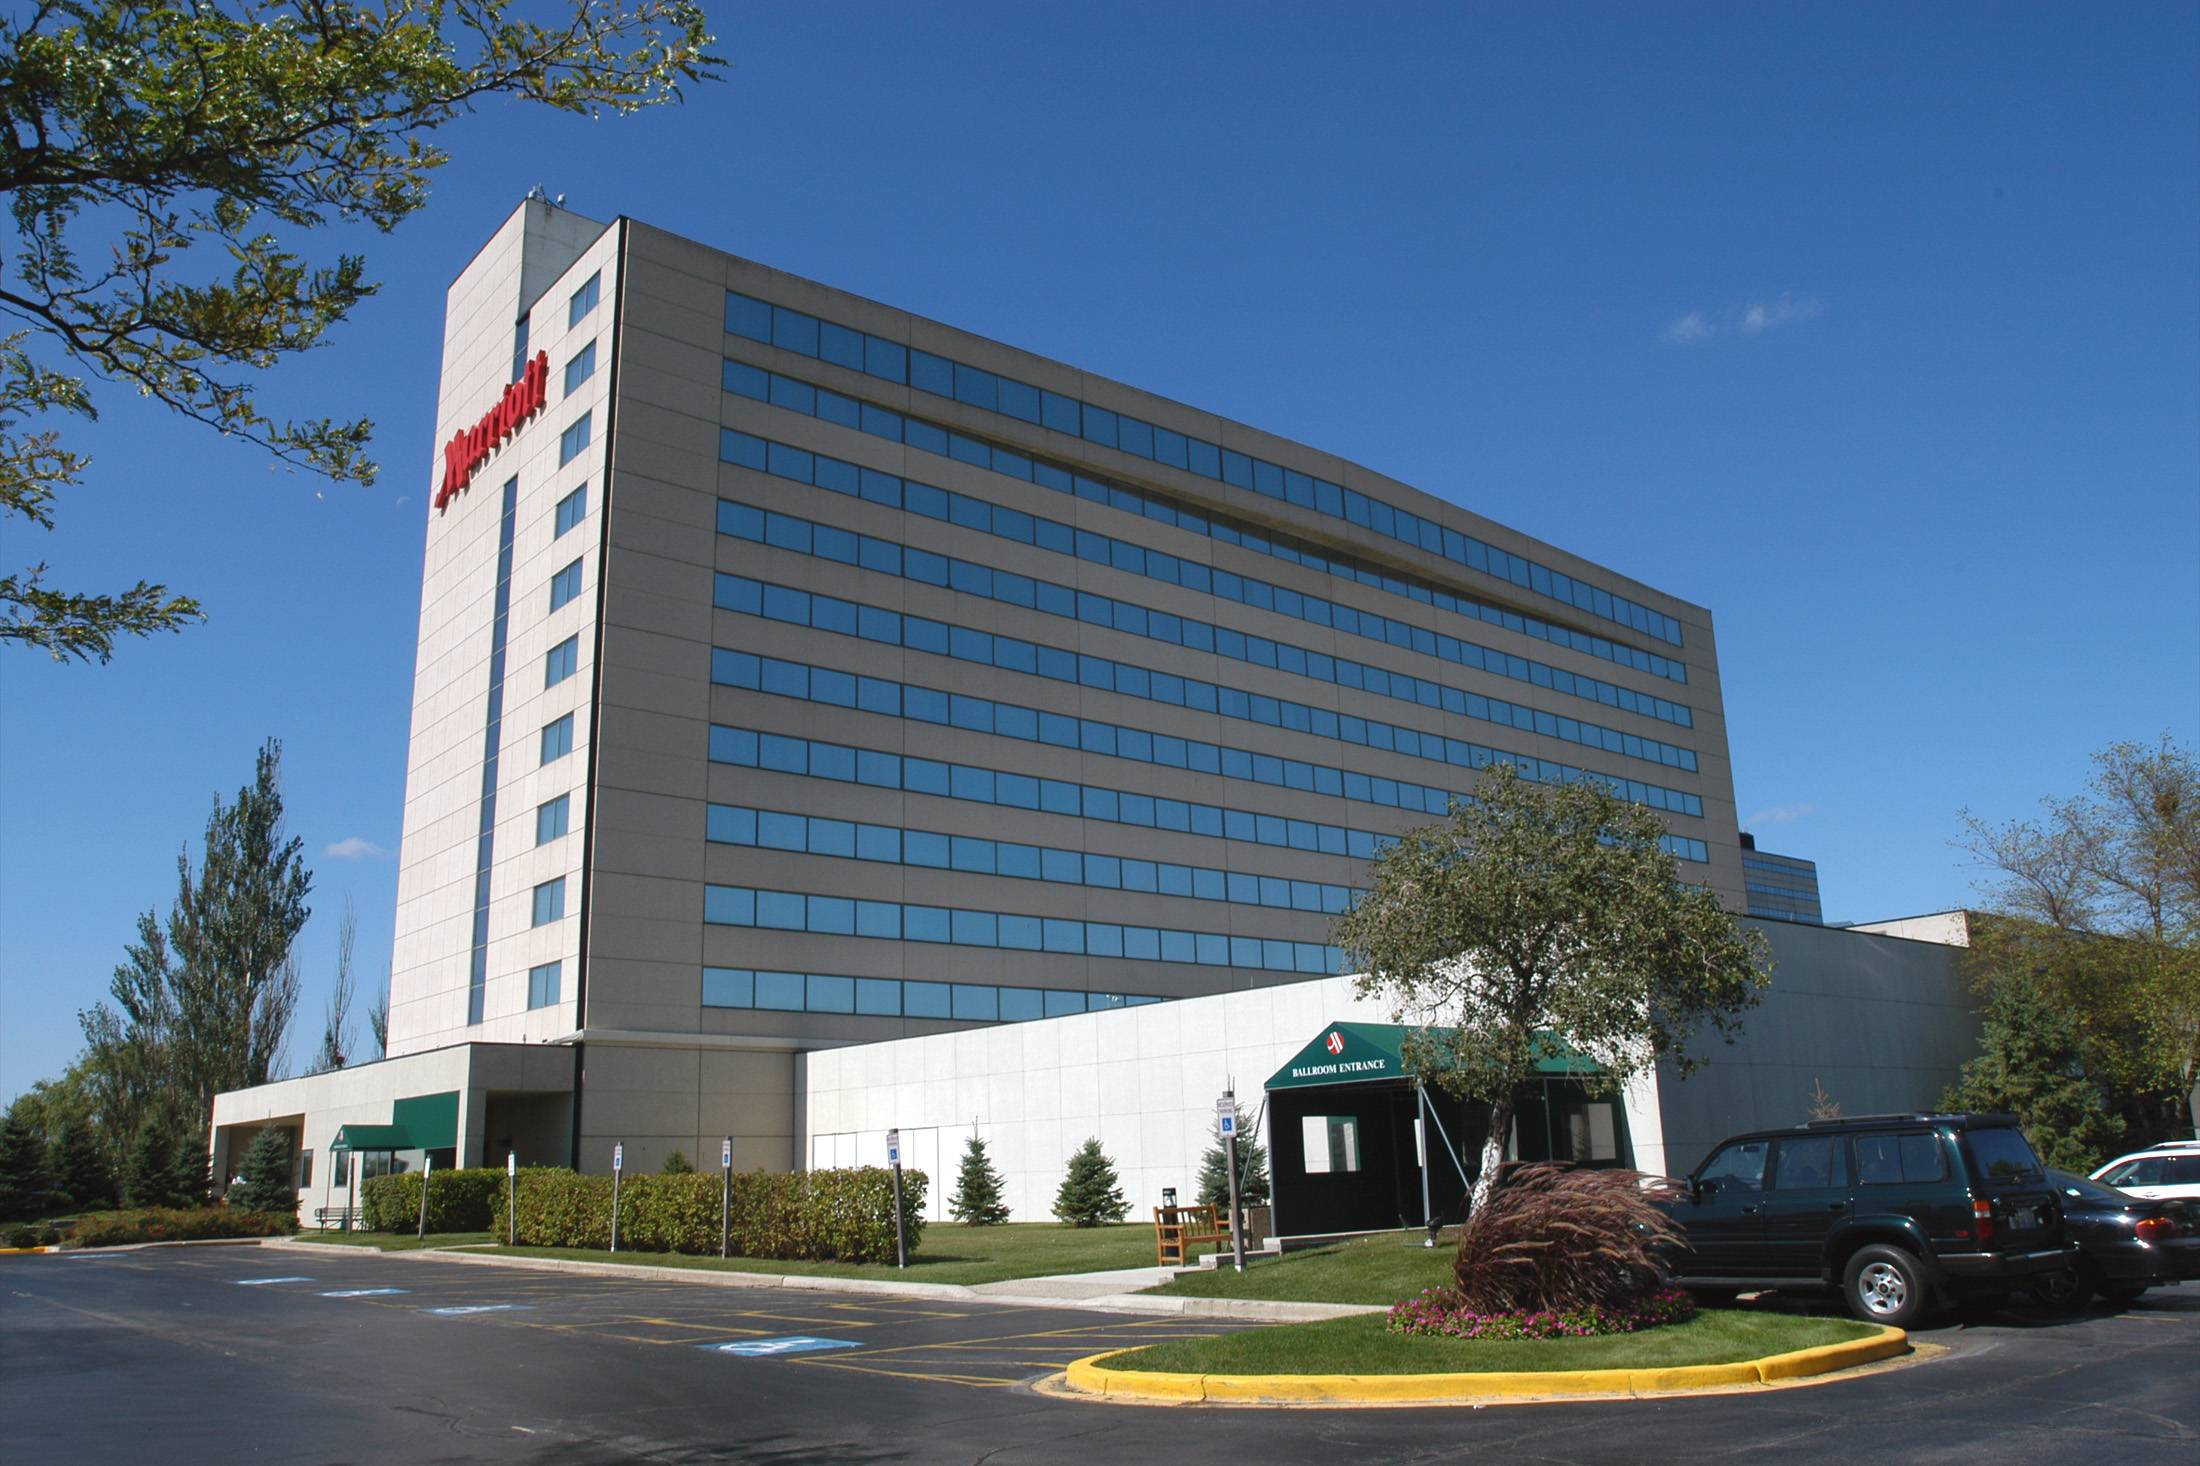 Two investment companies partnered to buy a the Schaumburg Marriott hotel for $35.5 million and plan to renovate the property.